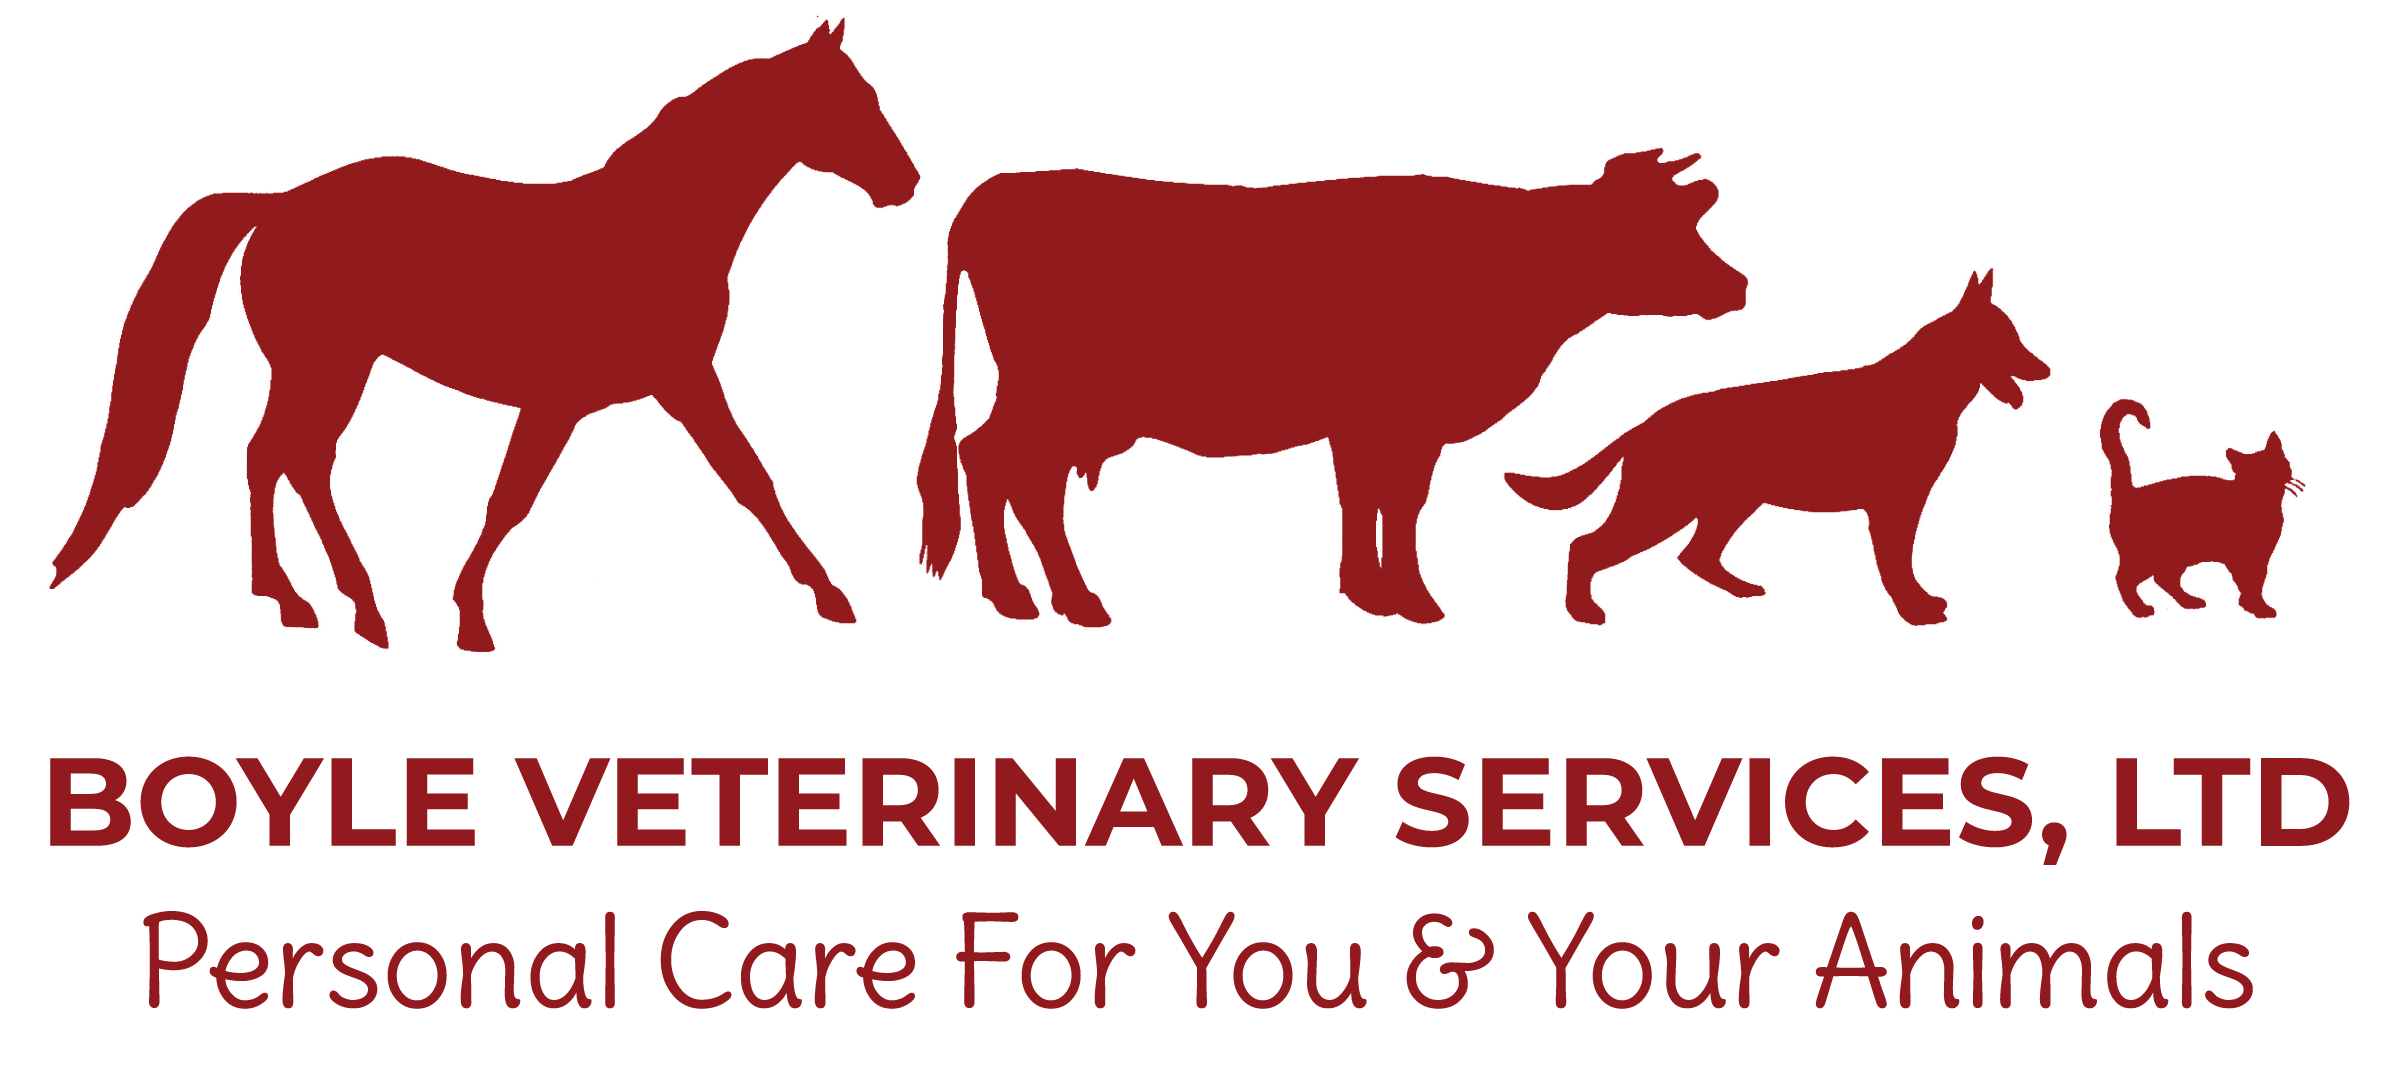 Boyle Veterinary Services